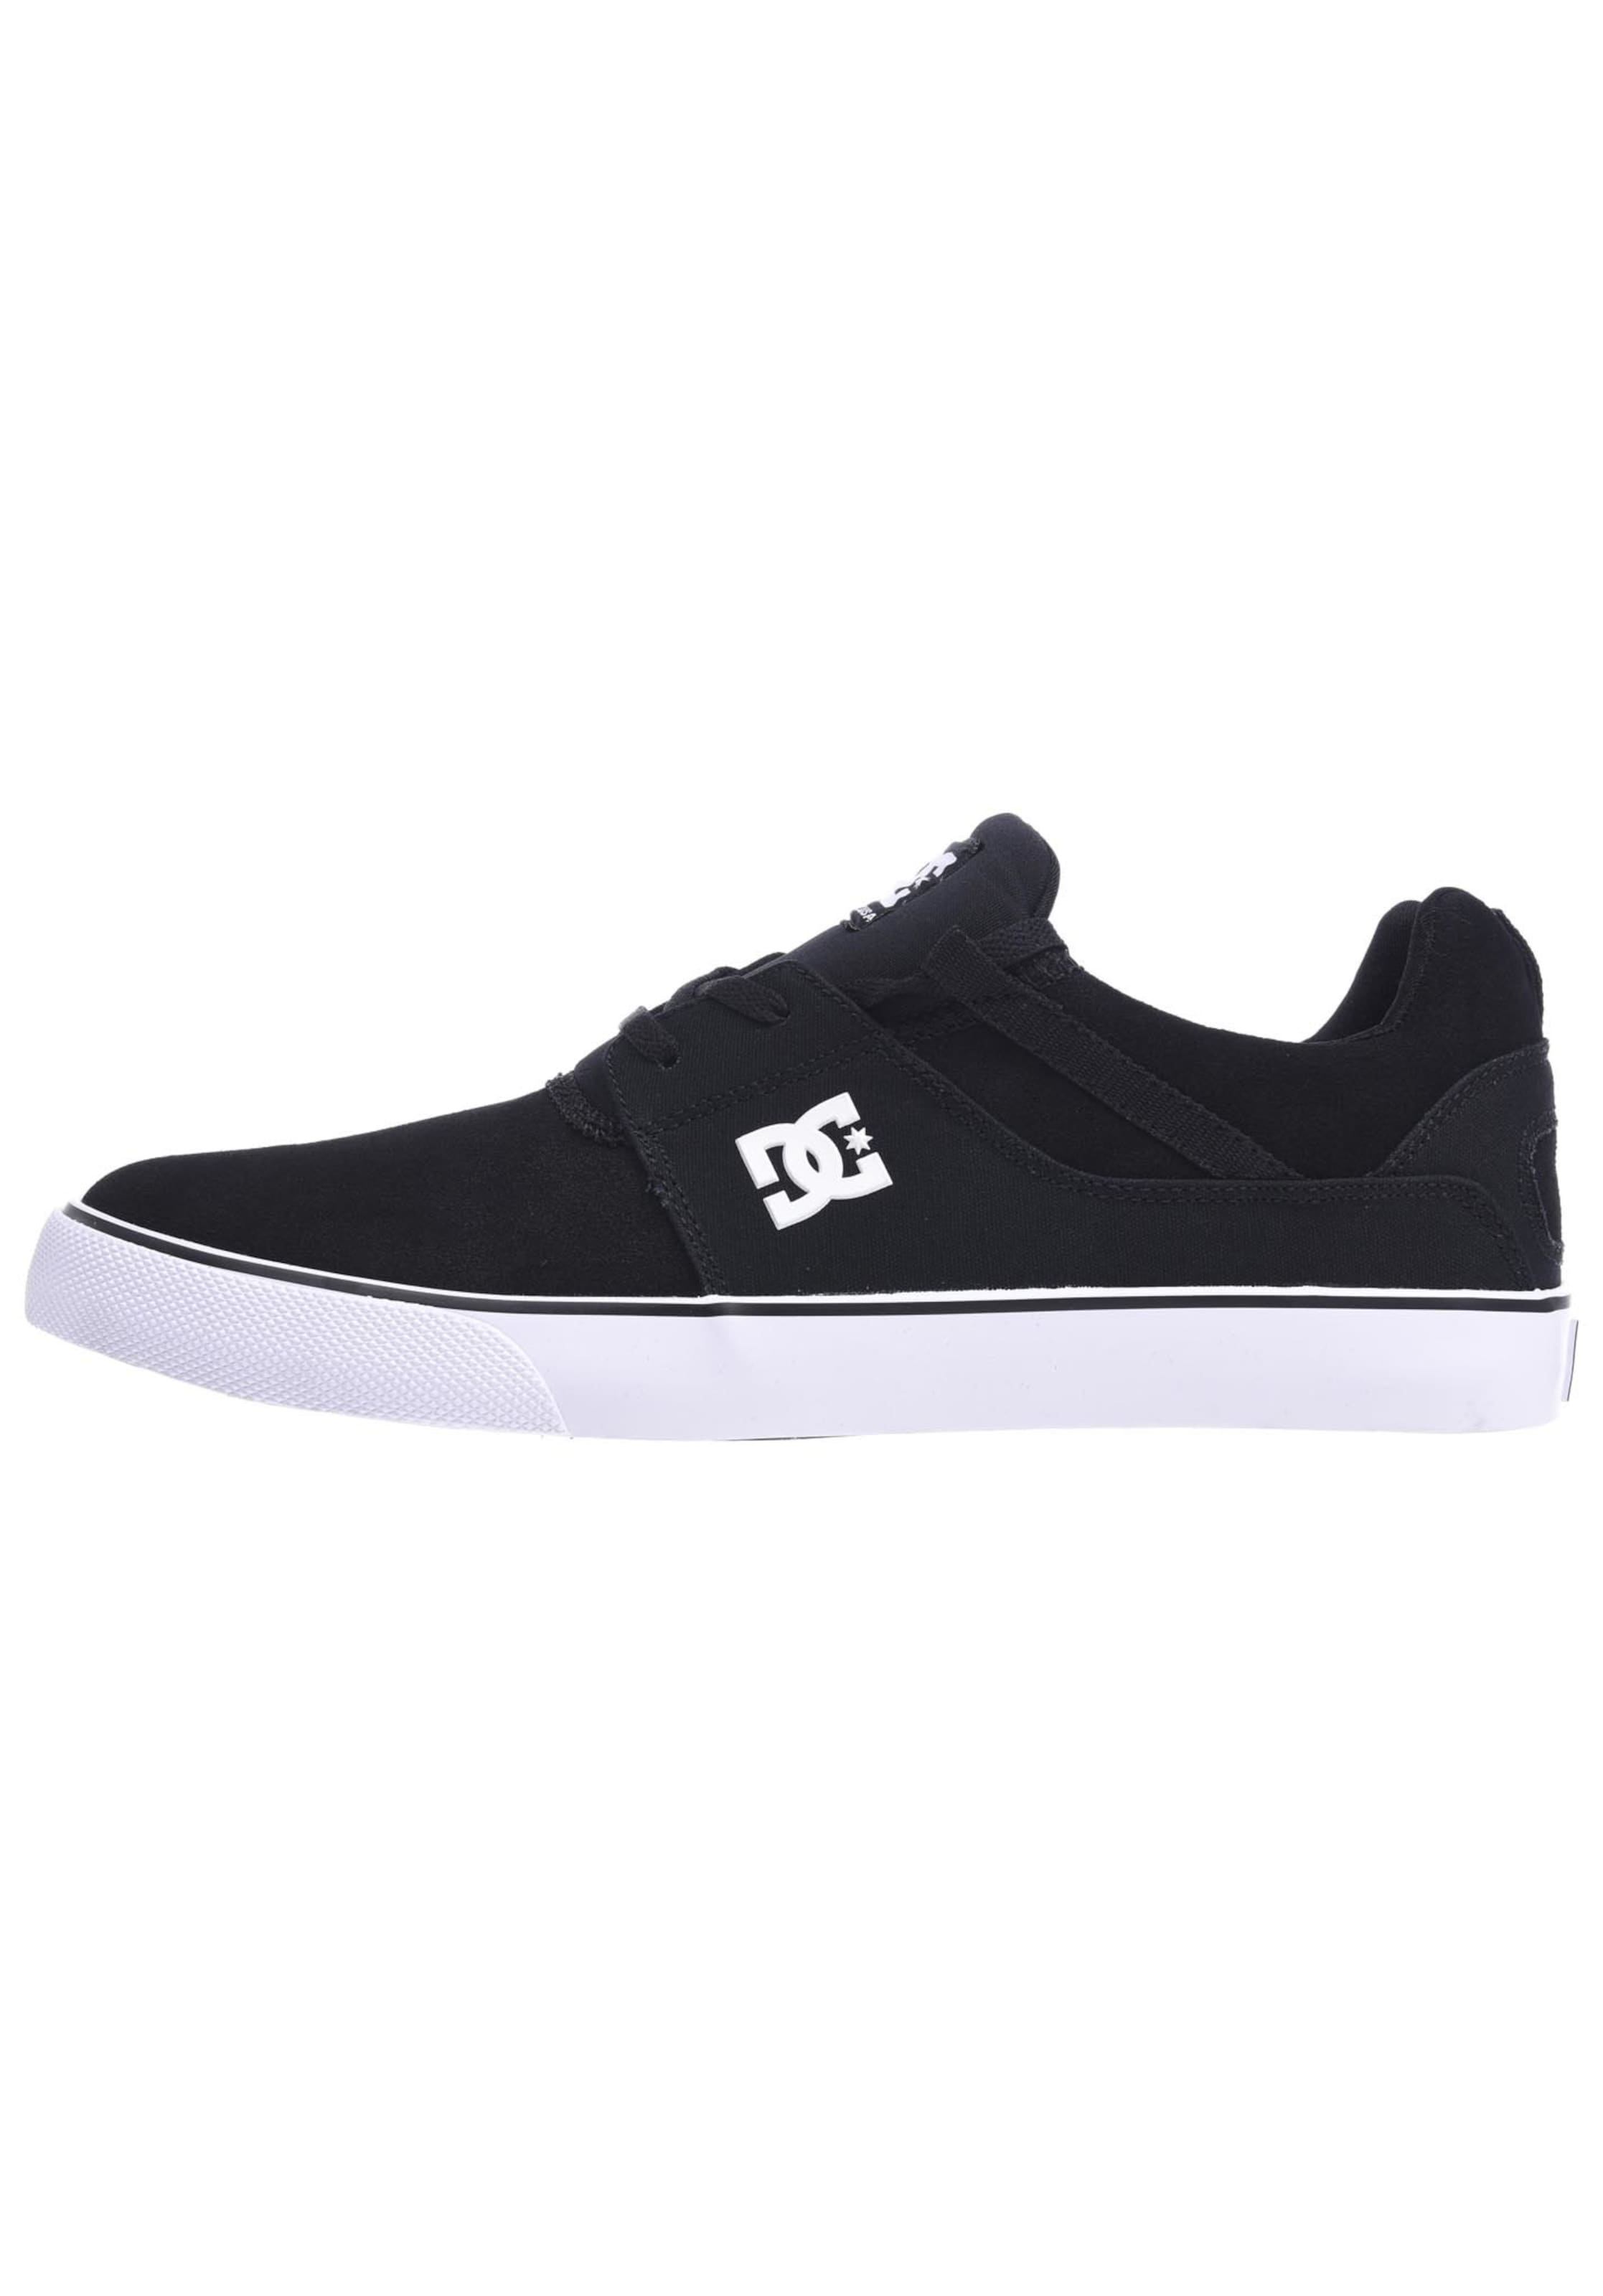 Vulc' In Schwarz Dc Sneaker Shoes 'heathrow 8wN0Ovmn